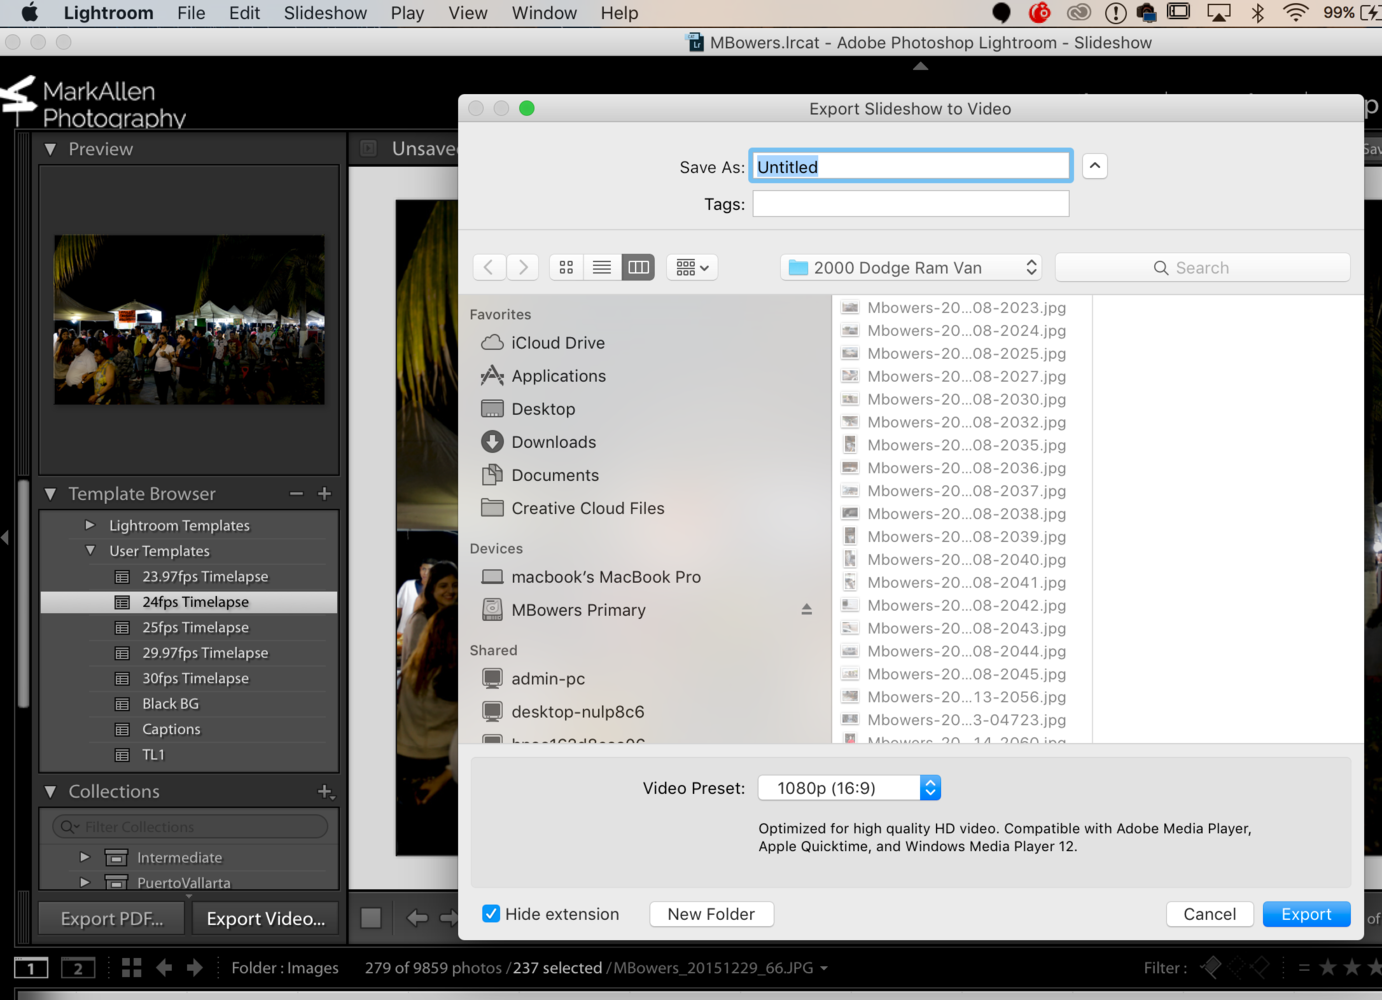 Save Your Timelapse Accordingly And Select A Video Preset Of 1080p 16 9